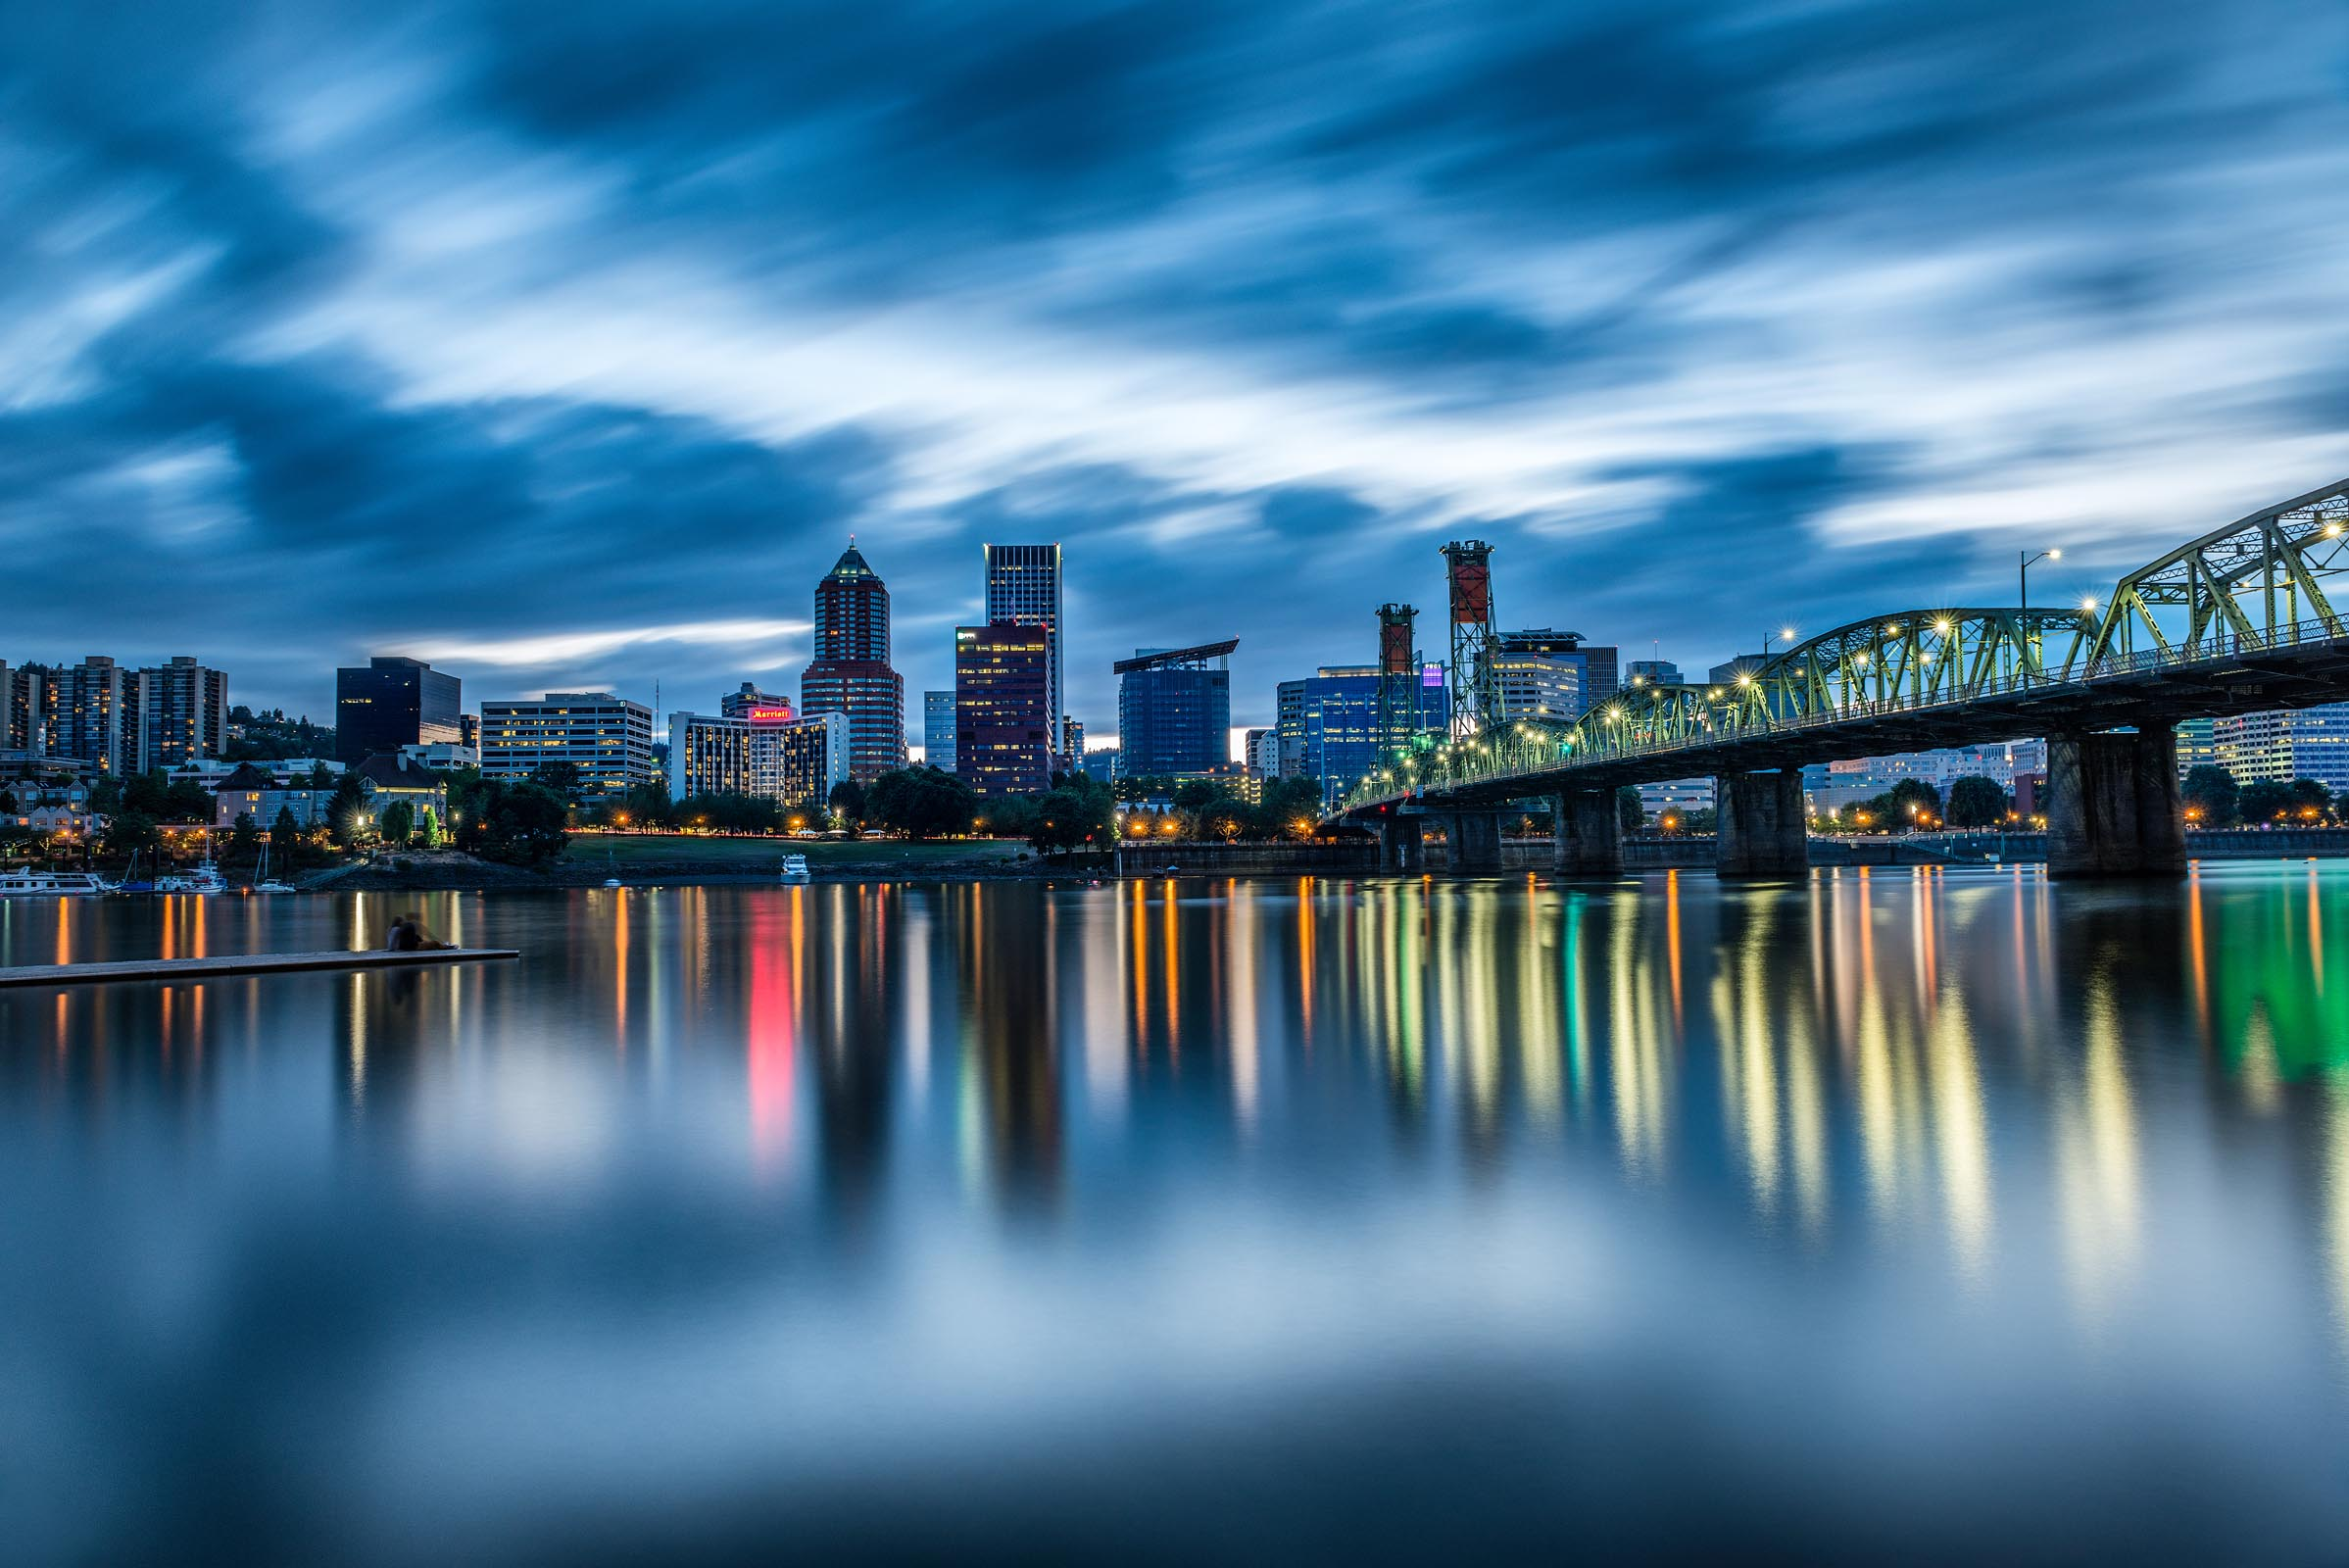 Photograph of Hawthorne Bridge in Portland, Oregon by Brent Goldman Photography